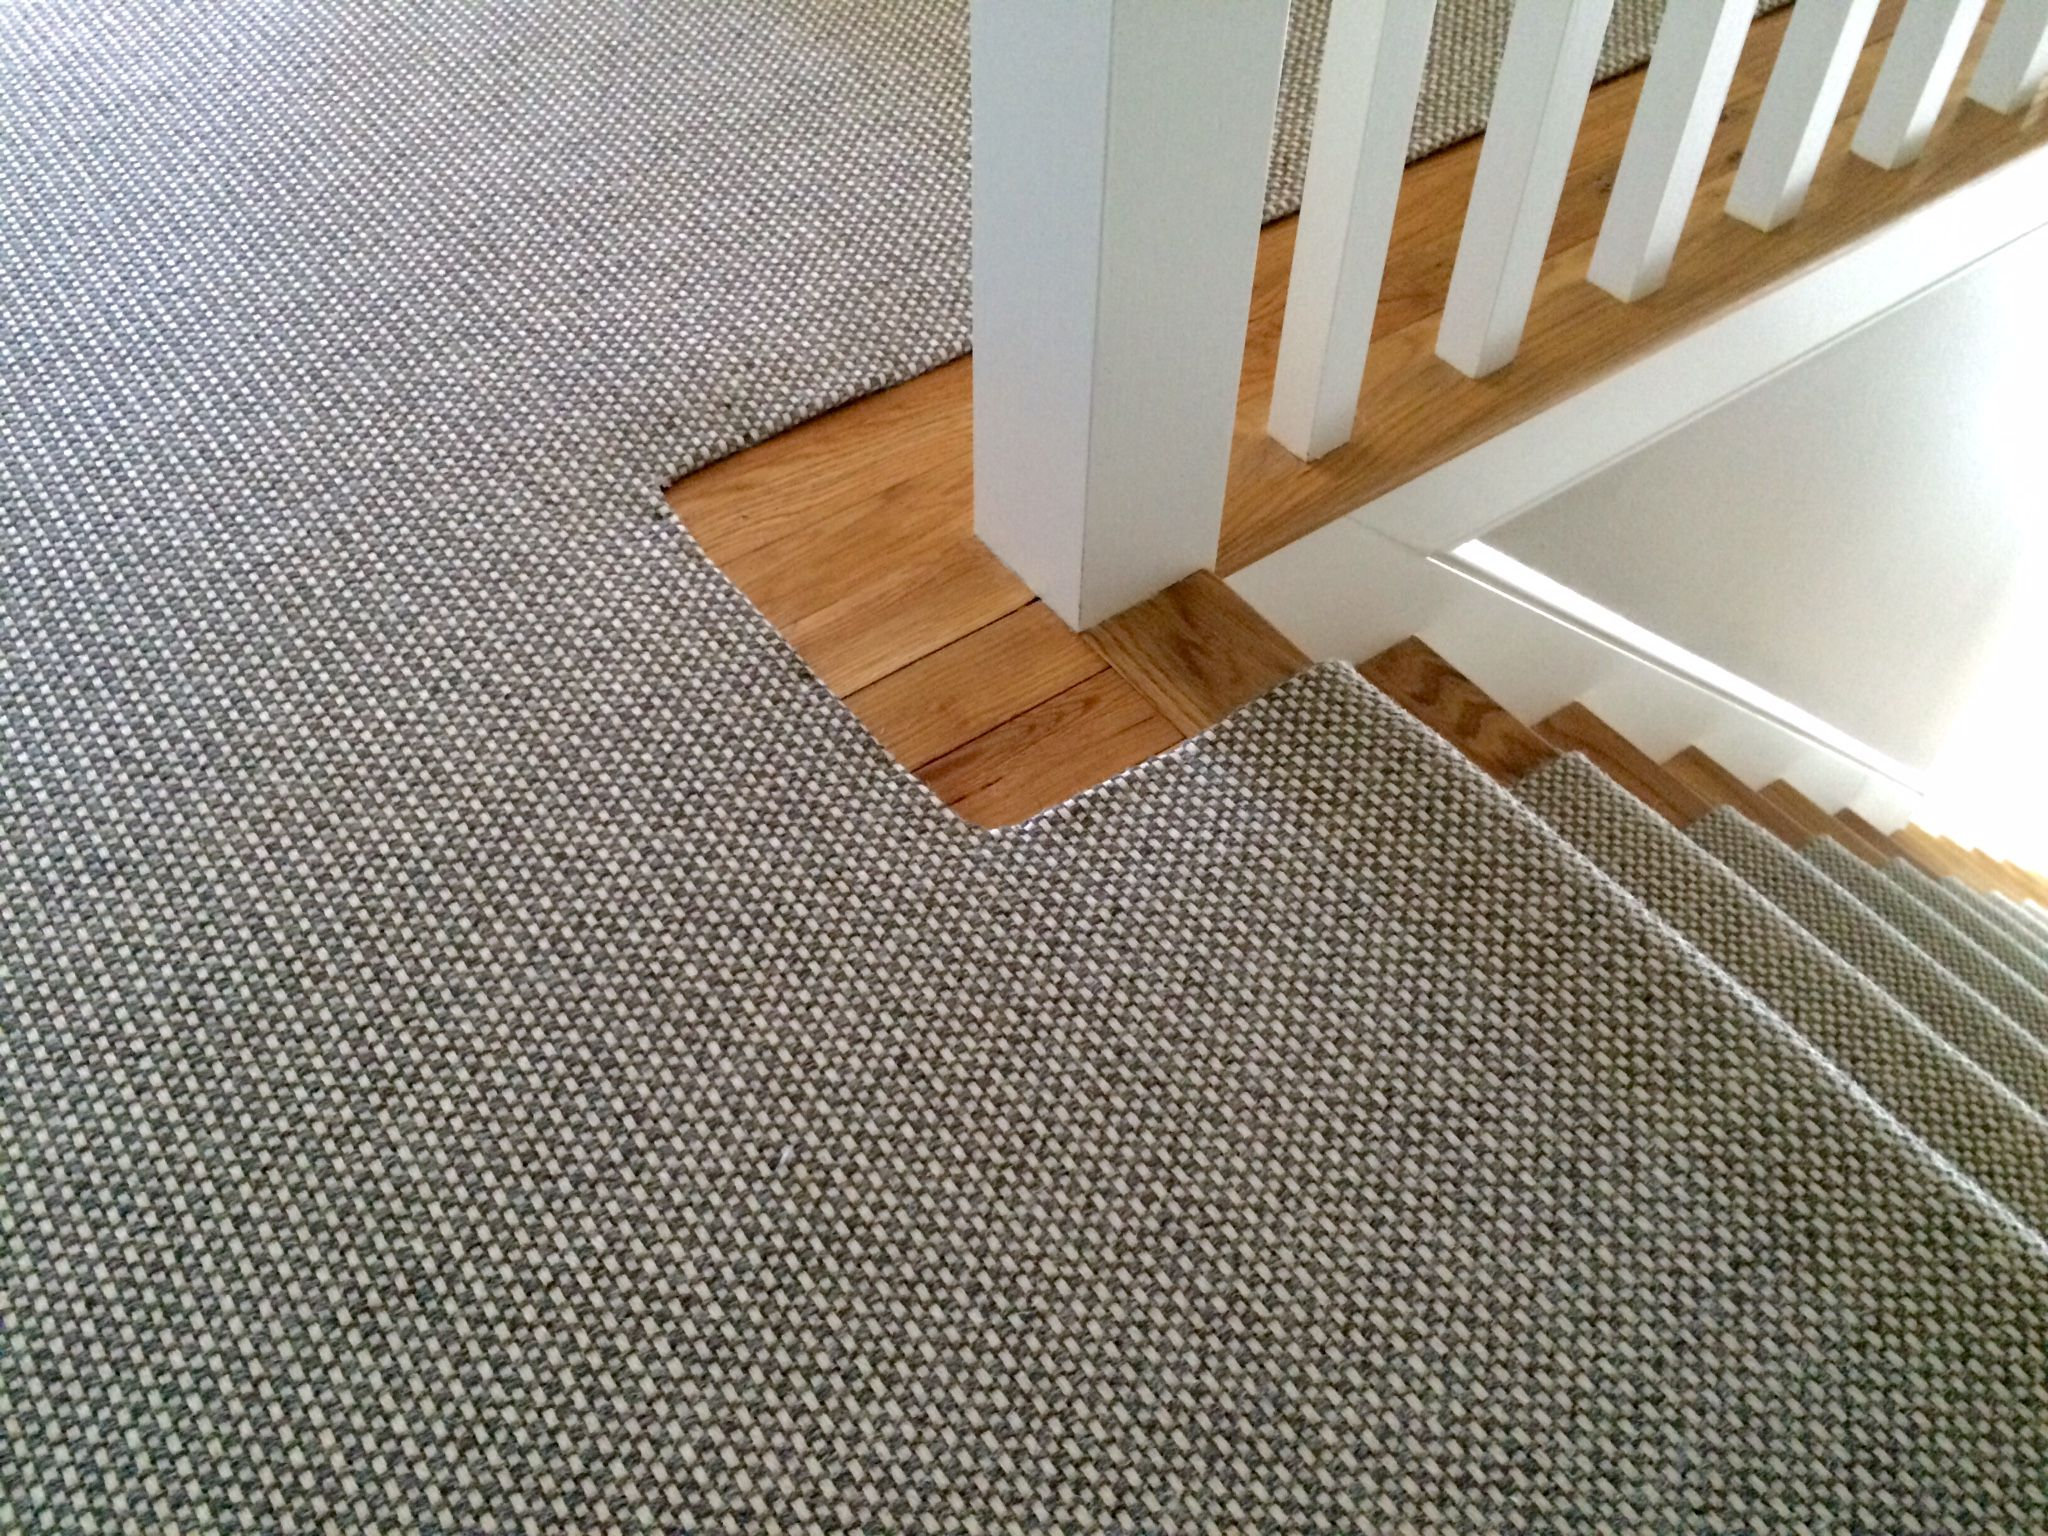 Check Out This Merida Studio Flat Woven Wool Stair